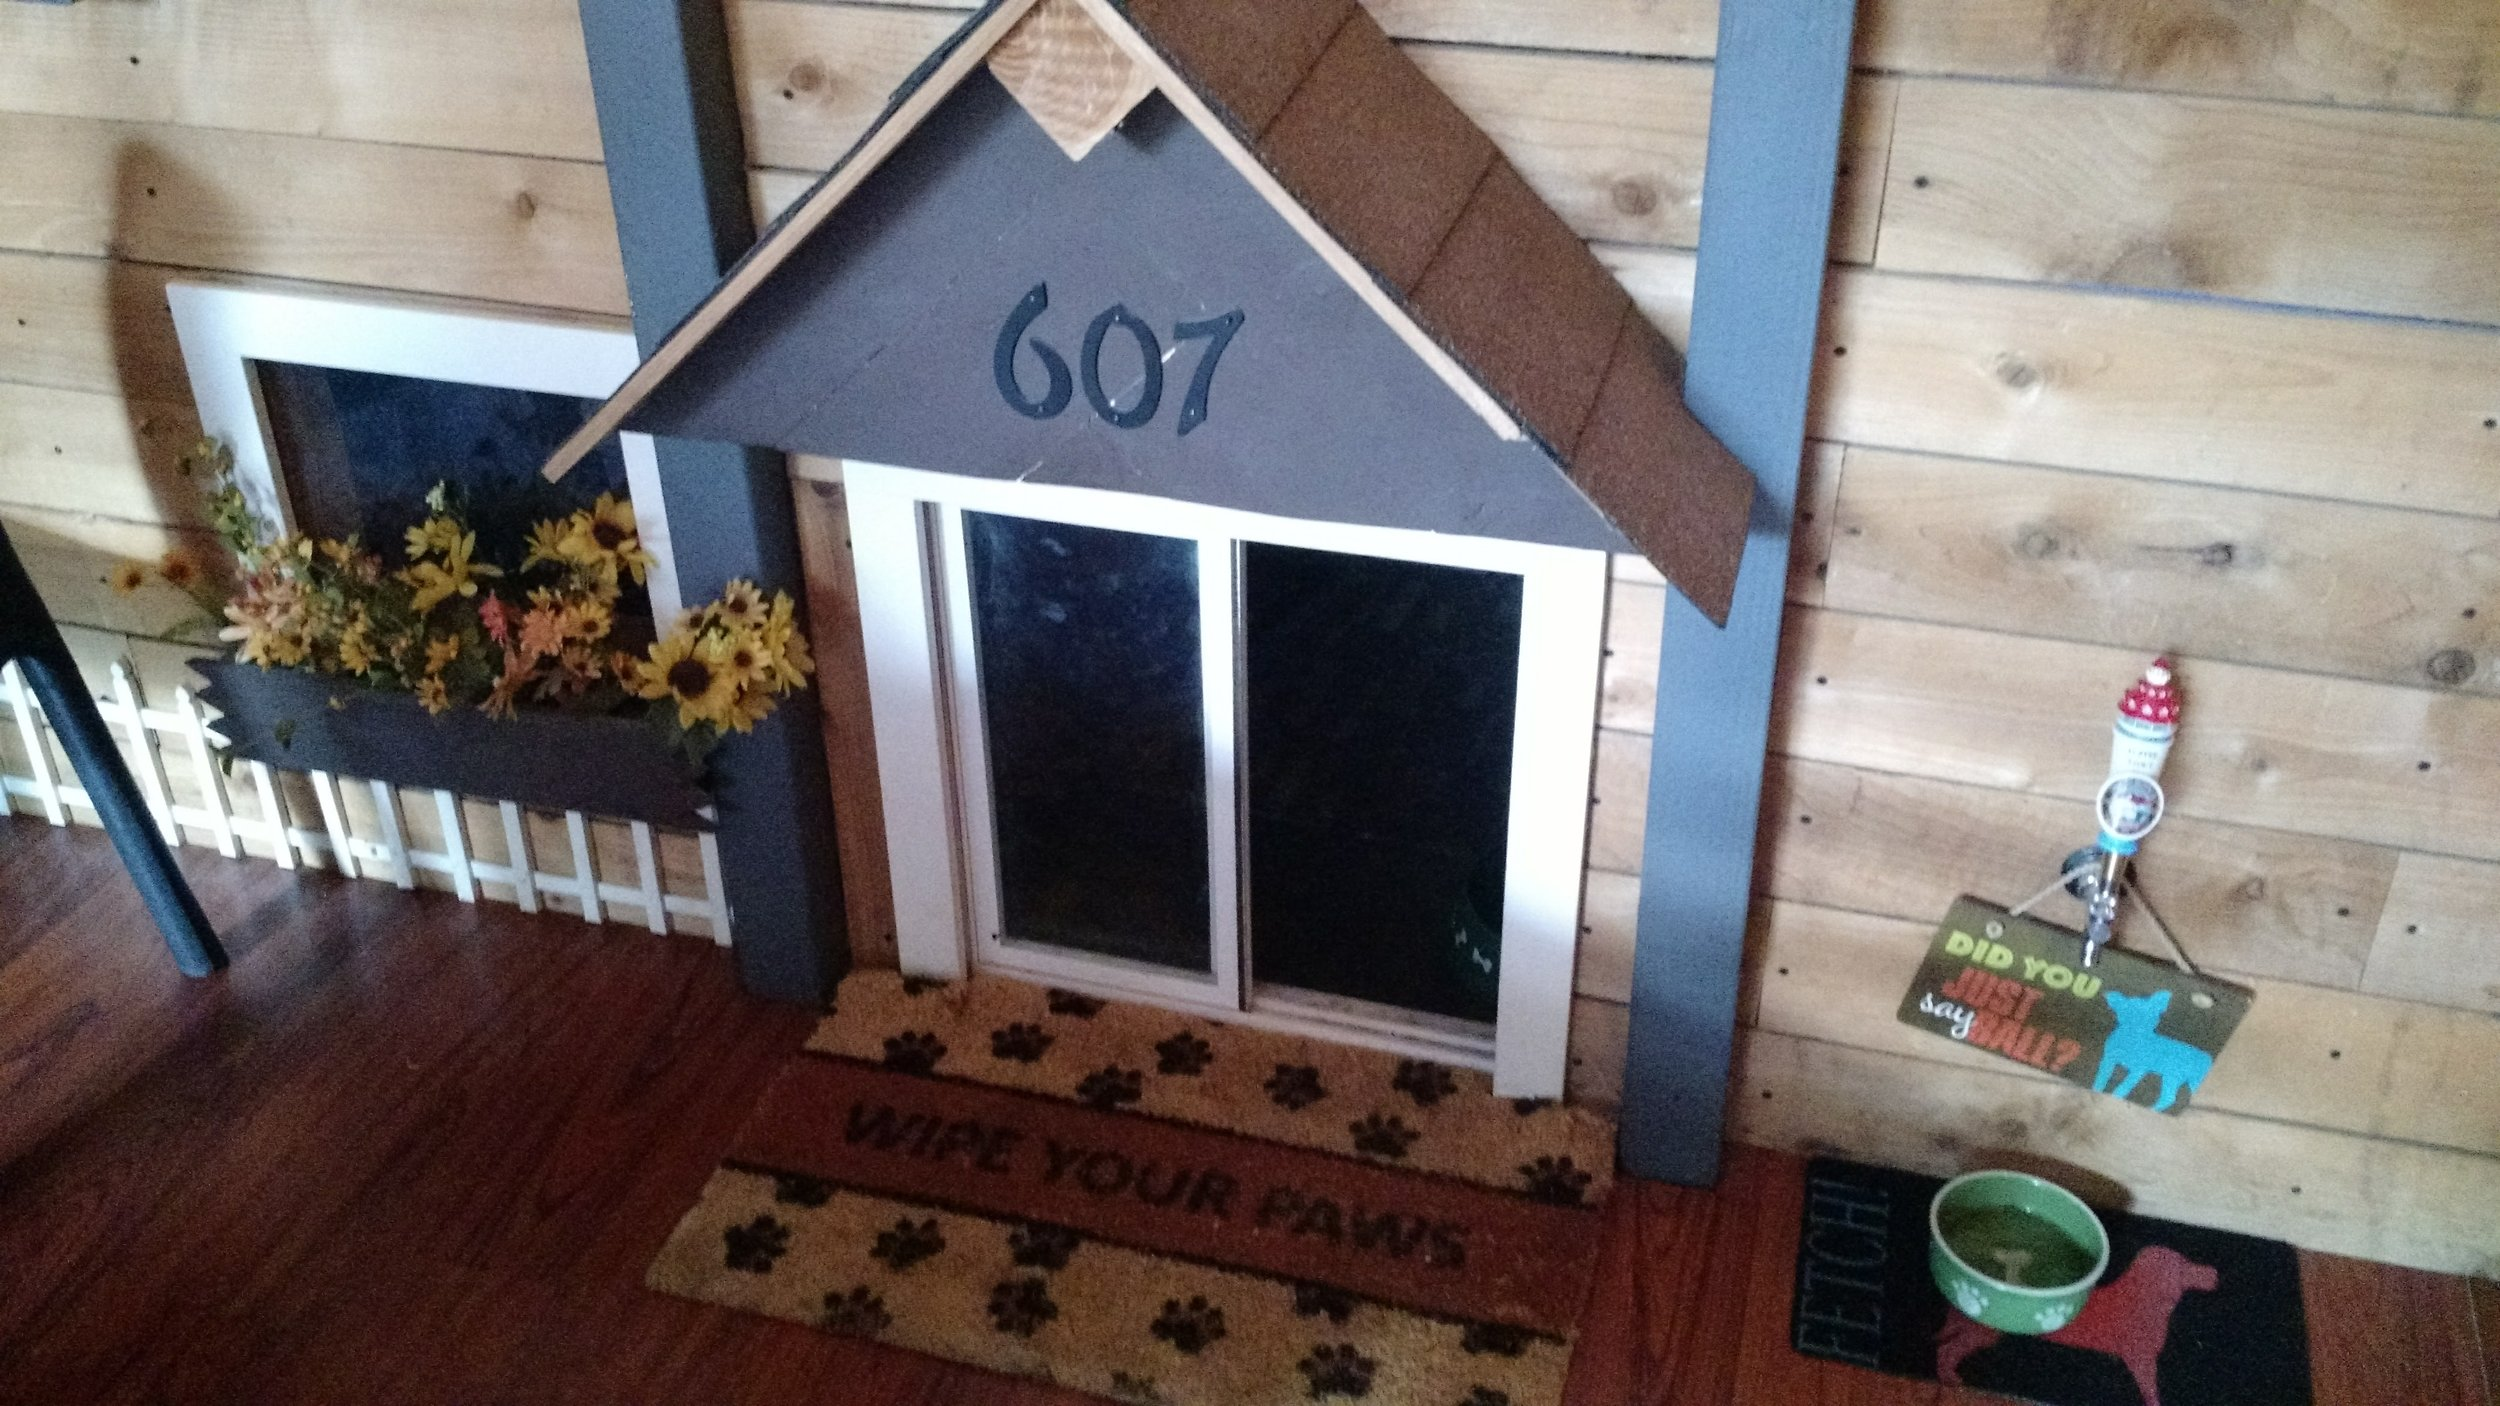 This is the tiny dog house inside Middleton. This is actually an old photo so I don't think it still looks like this